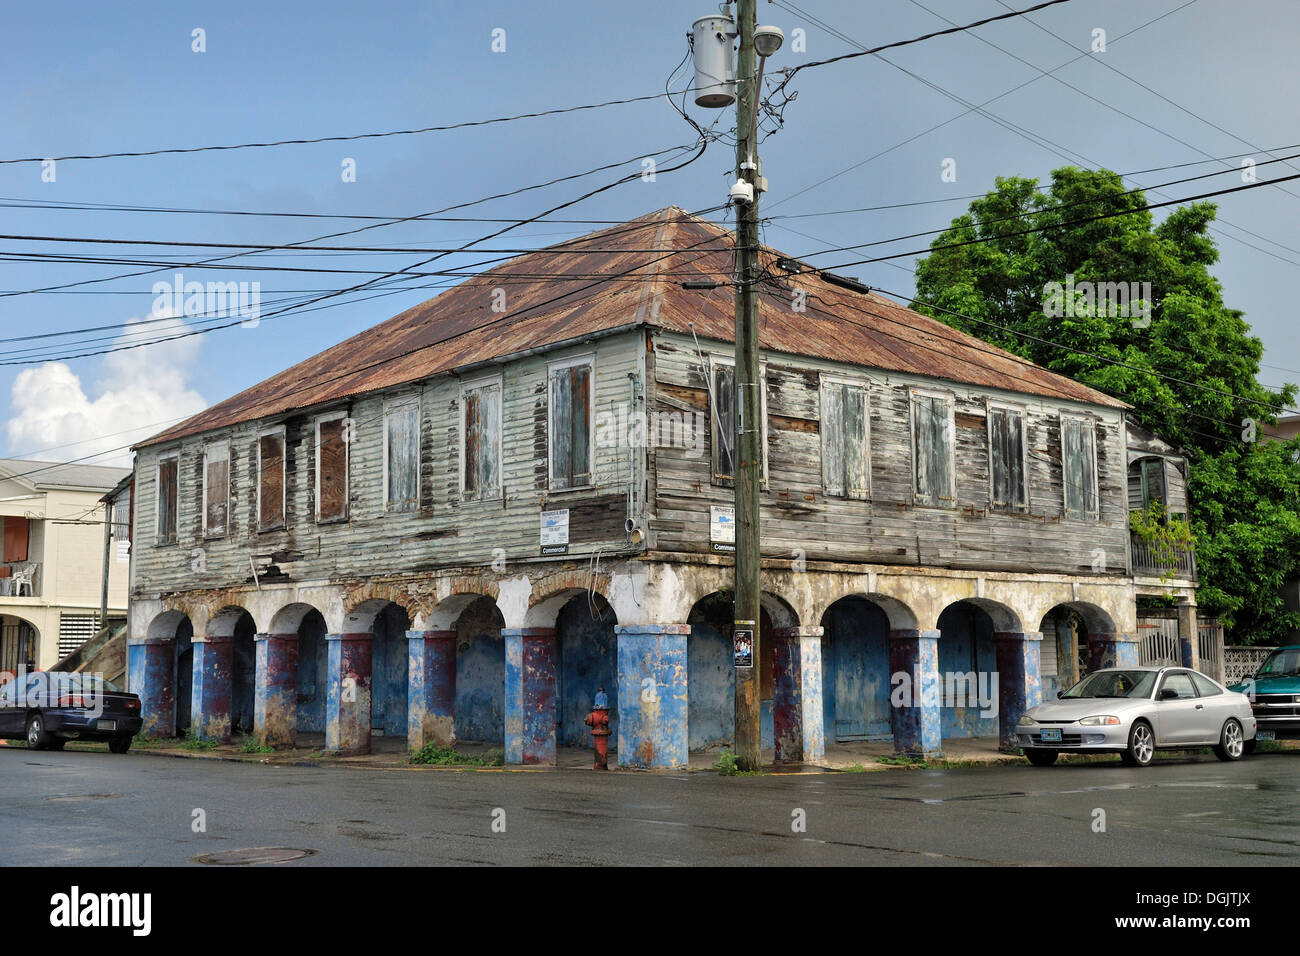 Old House With Arcades, In Need Of Renovation, Frederiksted, St. Croix  Island, US Virgin Islands, USA